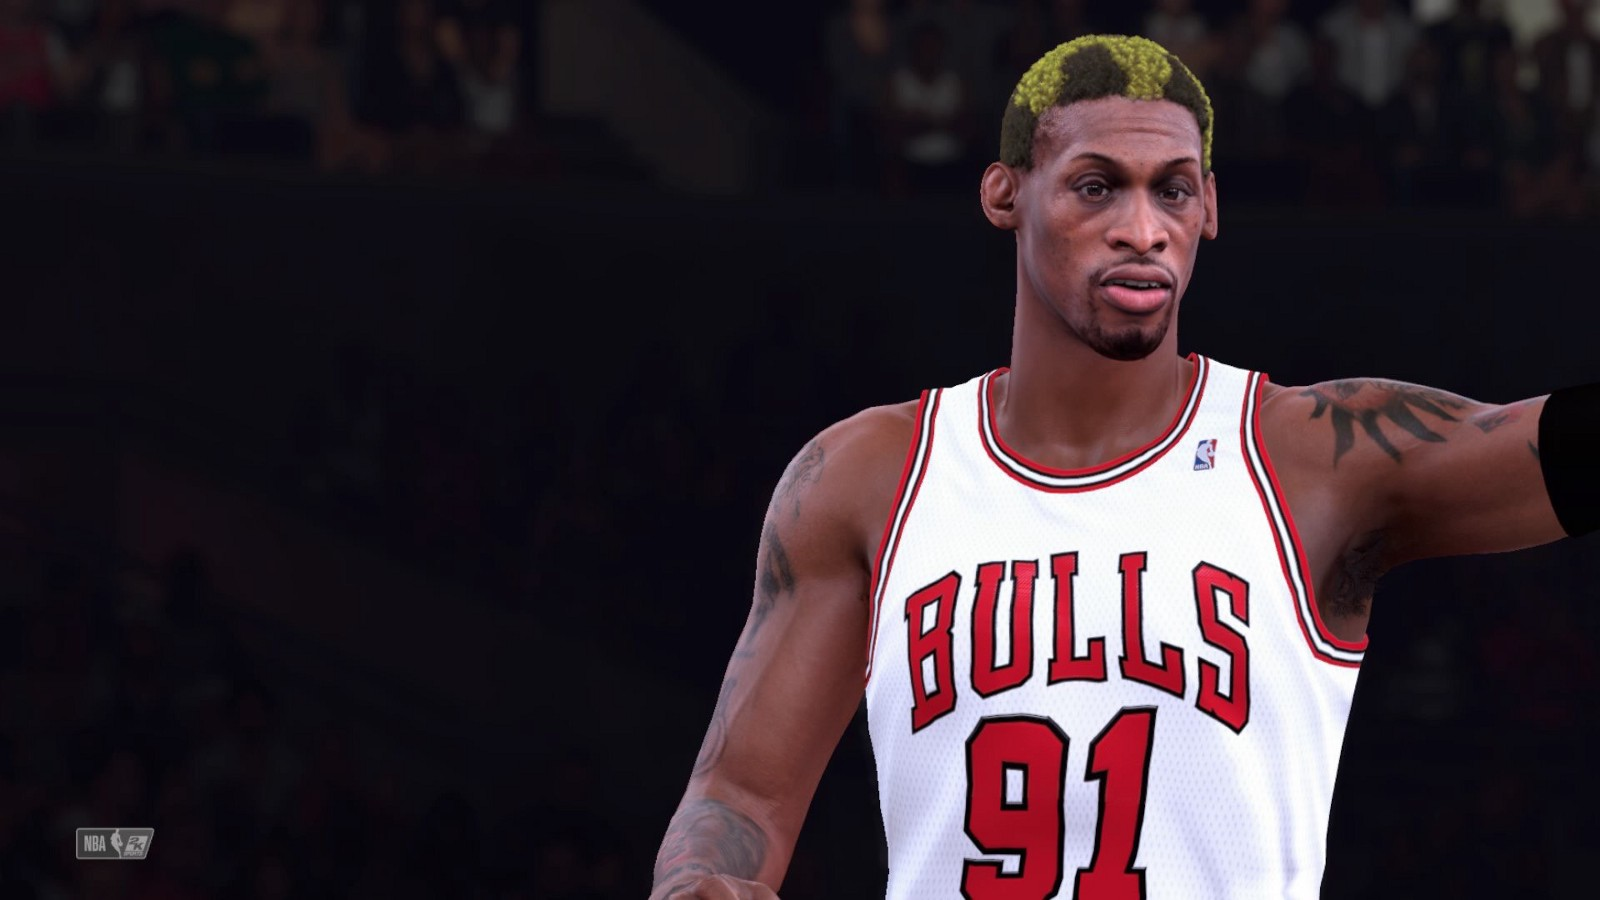 🌈 Nba 2k18 roster download | Rosters  2019-04-06